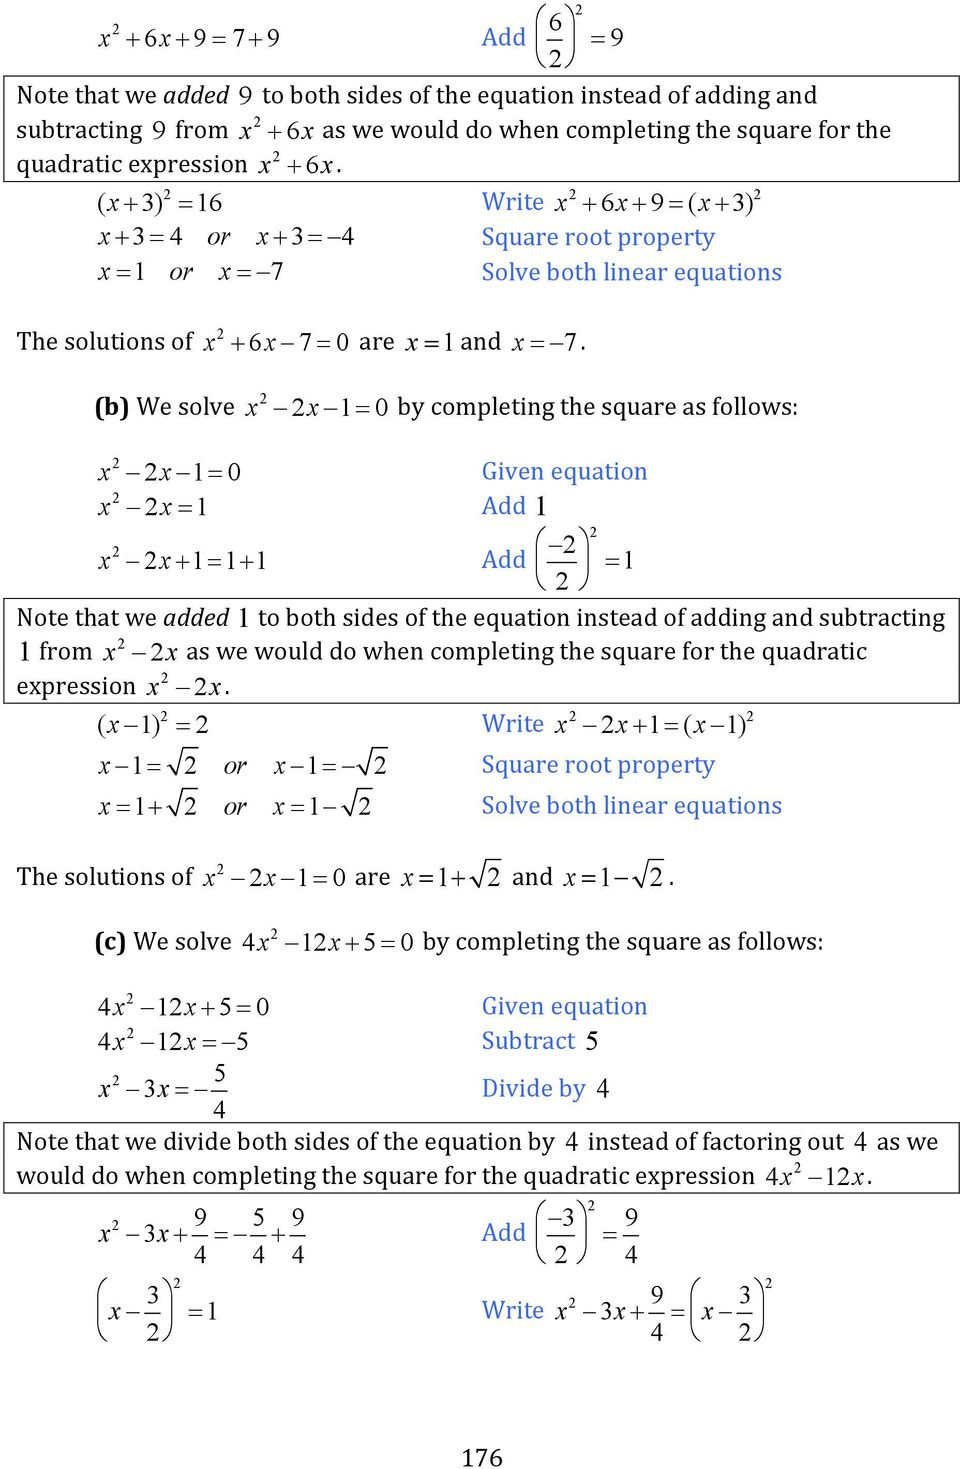 worksheet Solving Equations By Completing The Square Worksheet chapter 8 quadratic equations and functions pdf b we solve x 1 0 by completing the square as follows